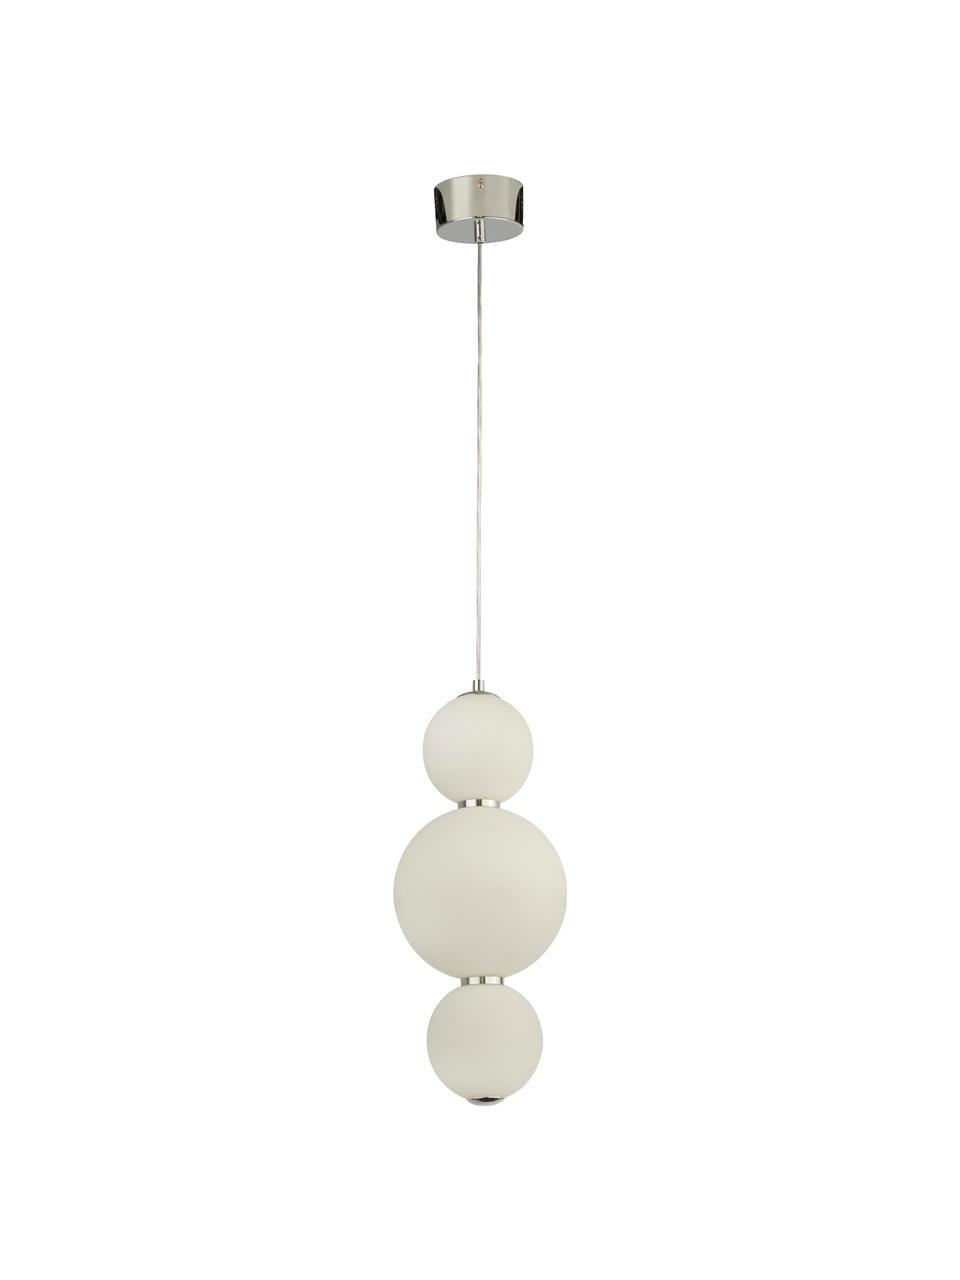 Suspension LED moderne Snowball, Blanc opalescent, chrome